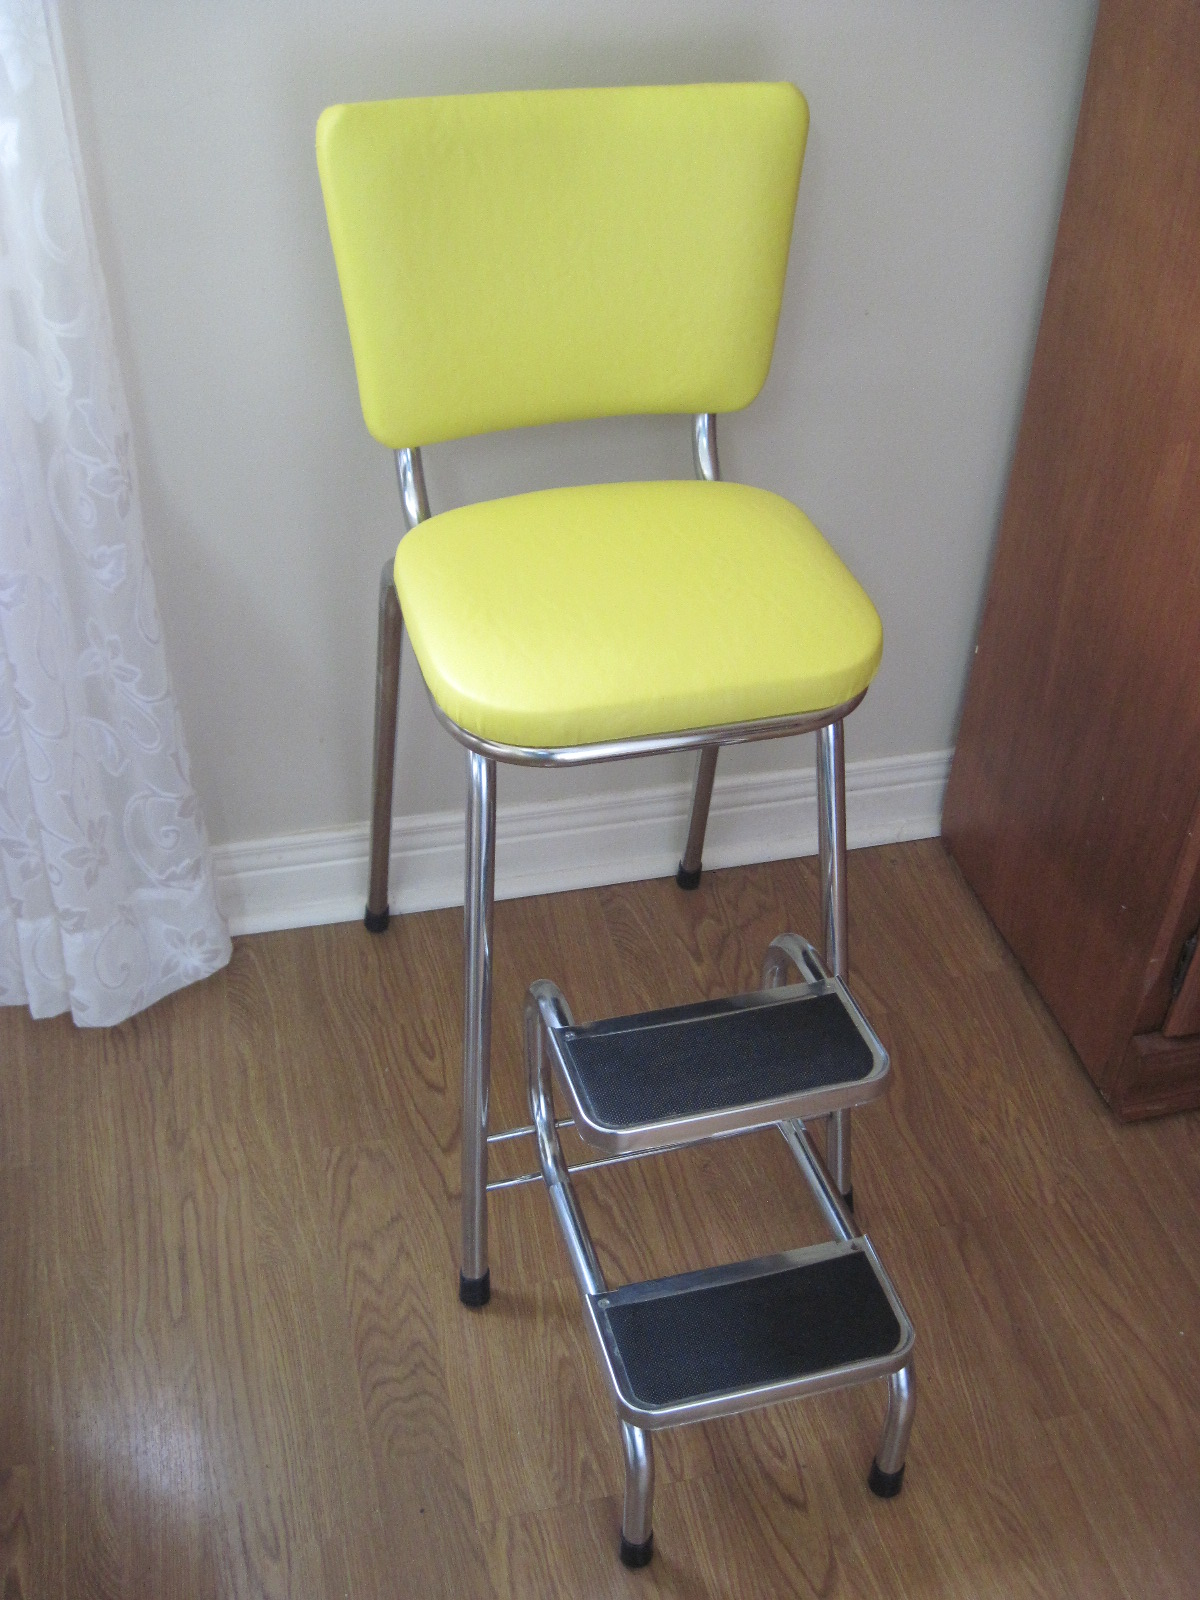 chrome kitchen chairs booster seat vintage yellow step stool by cesare furniture